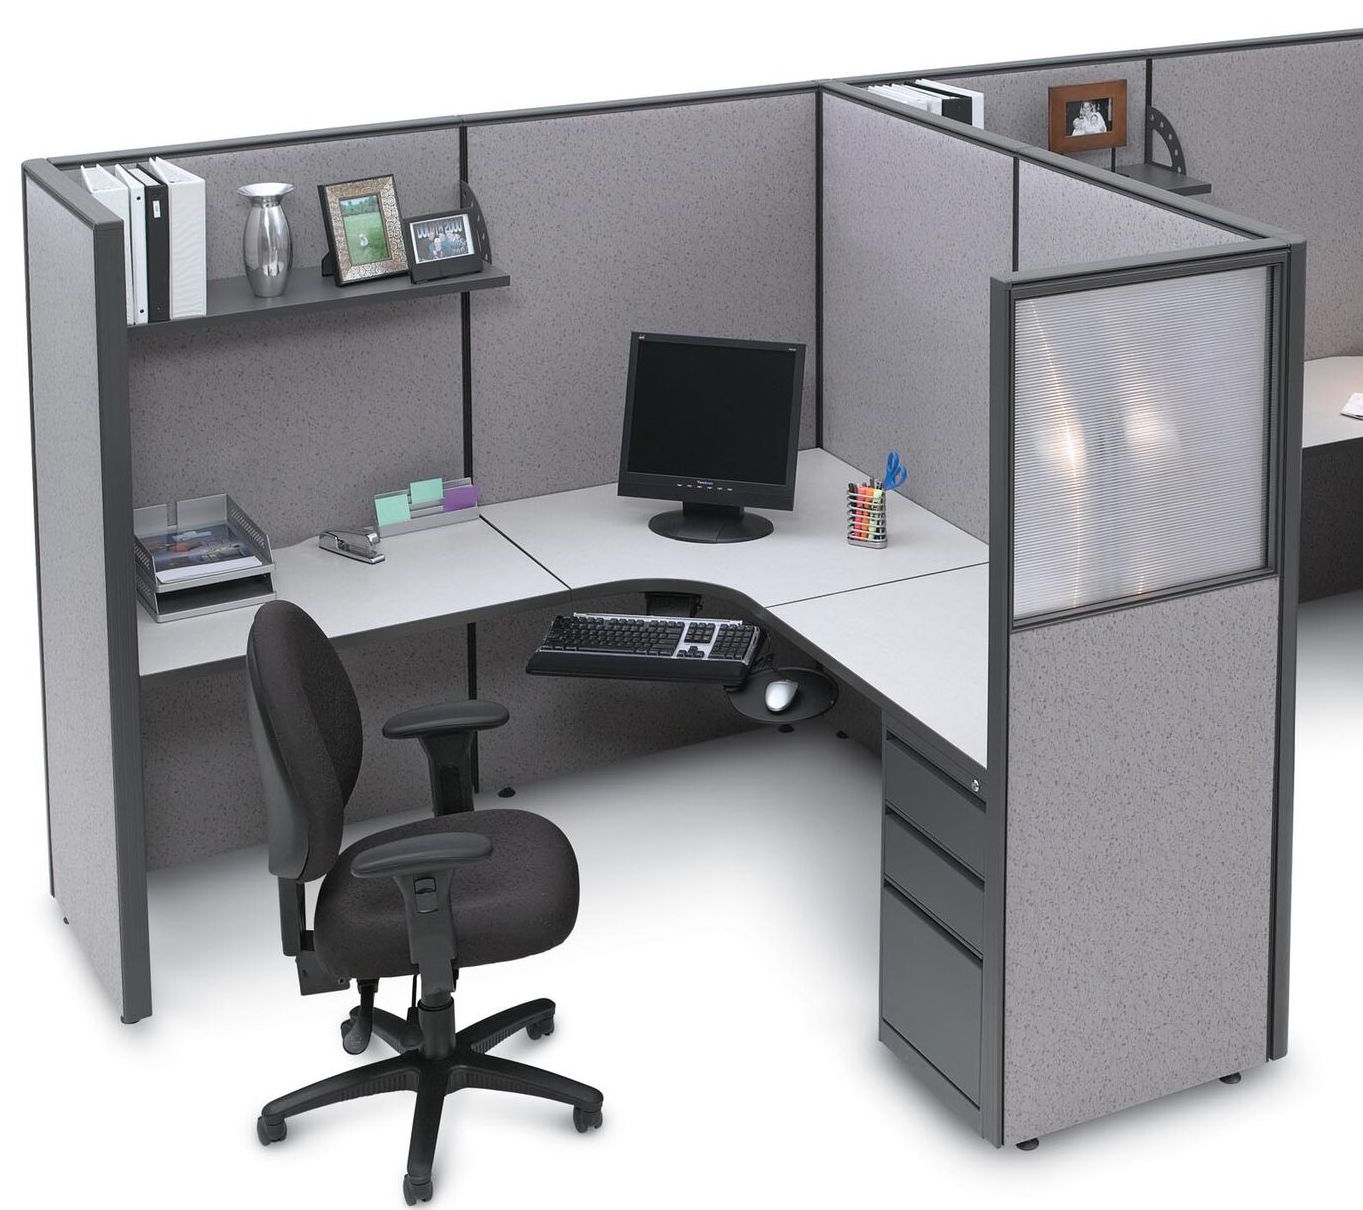 Maxspace 66h 6 X 6 Cubicle Office Furniture Chicago